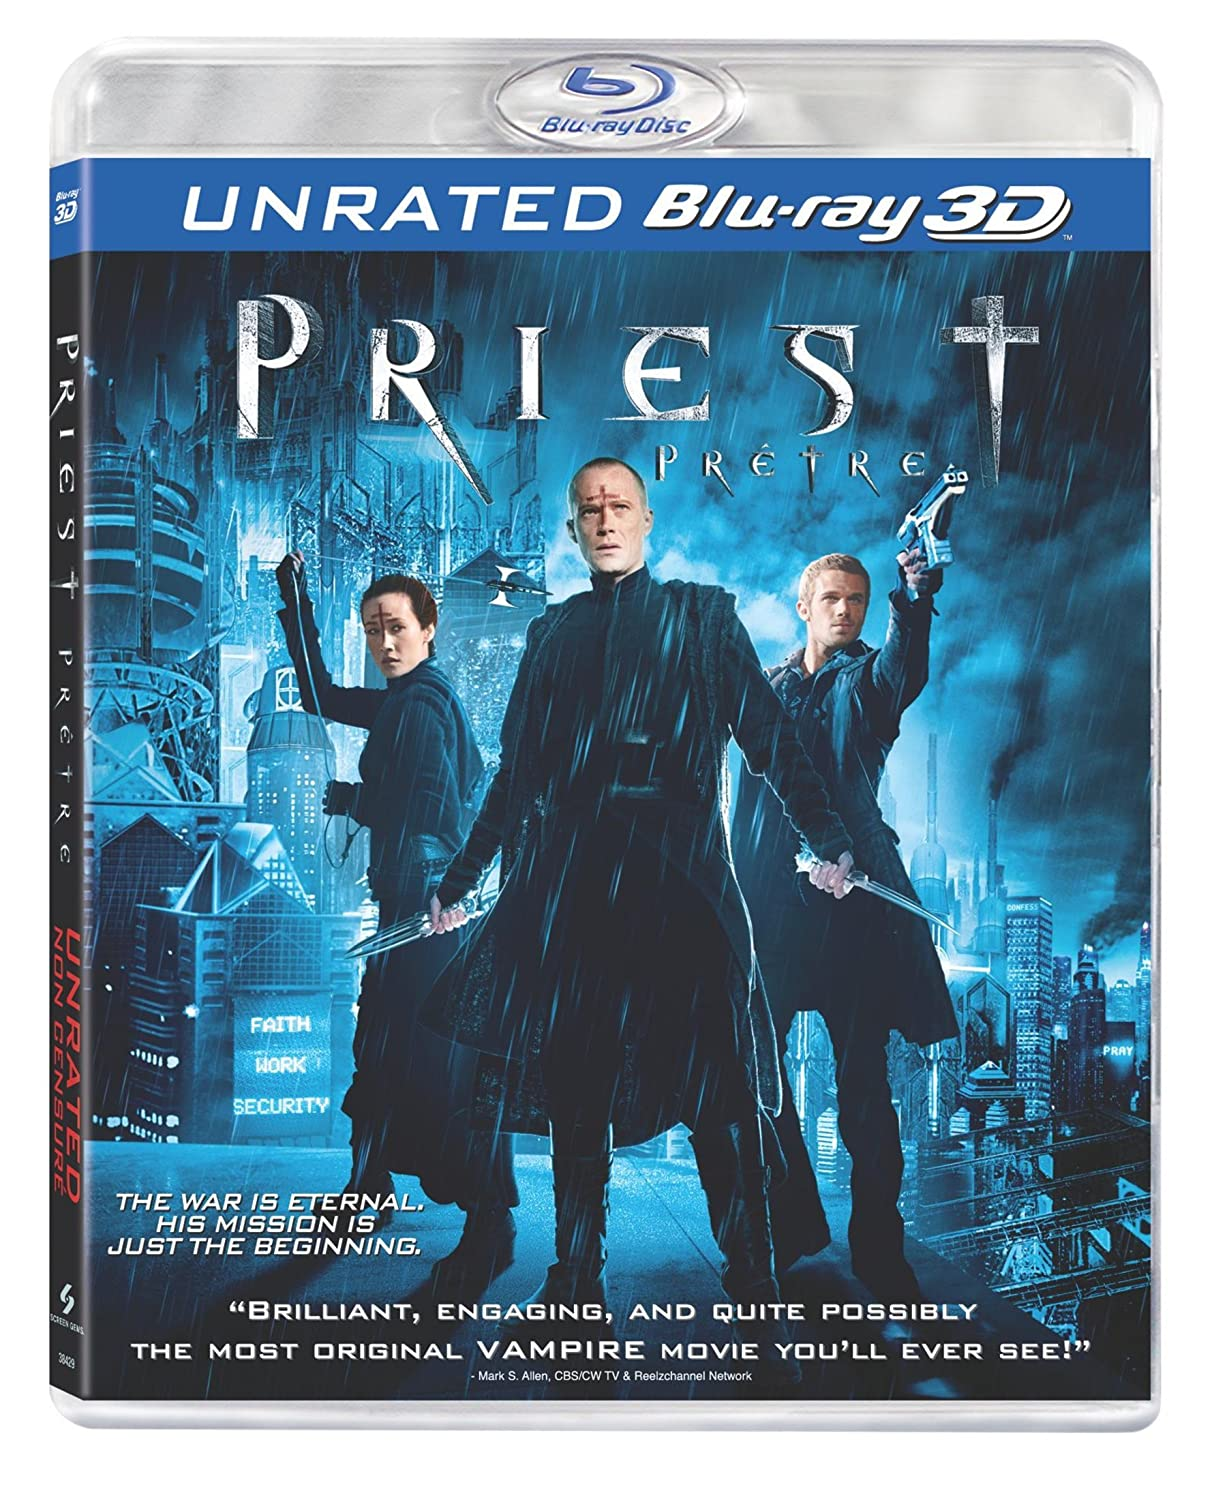 Priest 3D: Unrated - Prêtre 3D [Blu-ray 3D] (Bilingual) Maggie Q Paul Bettany Karl Urban Cam Gigandet